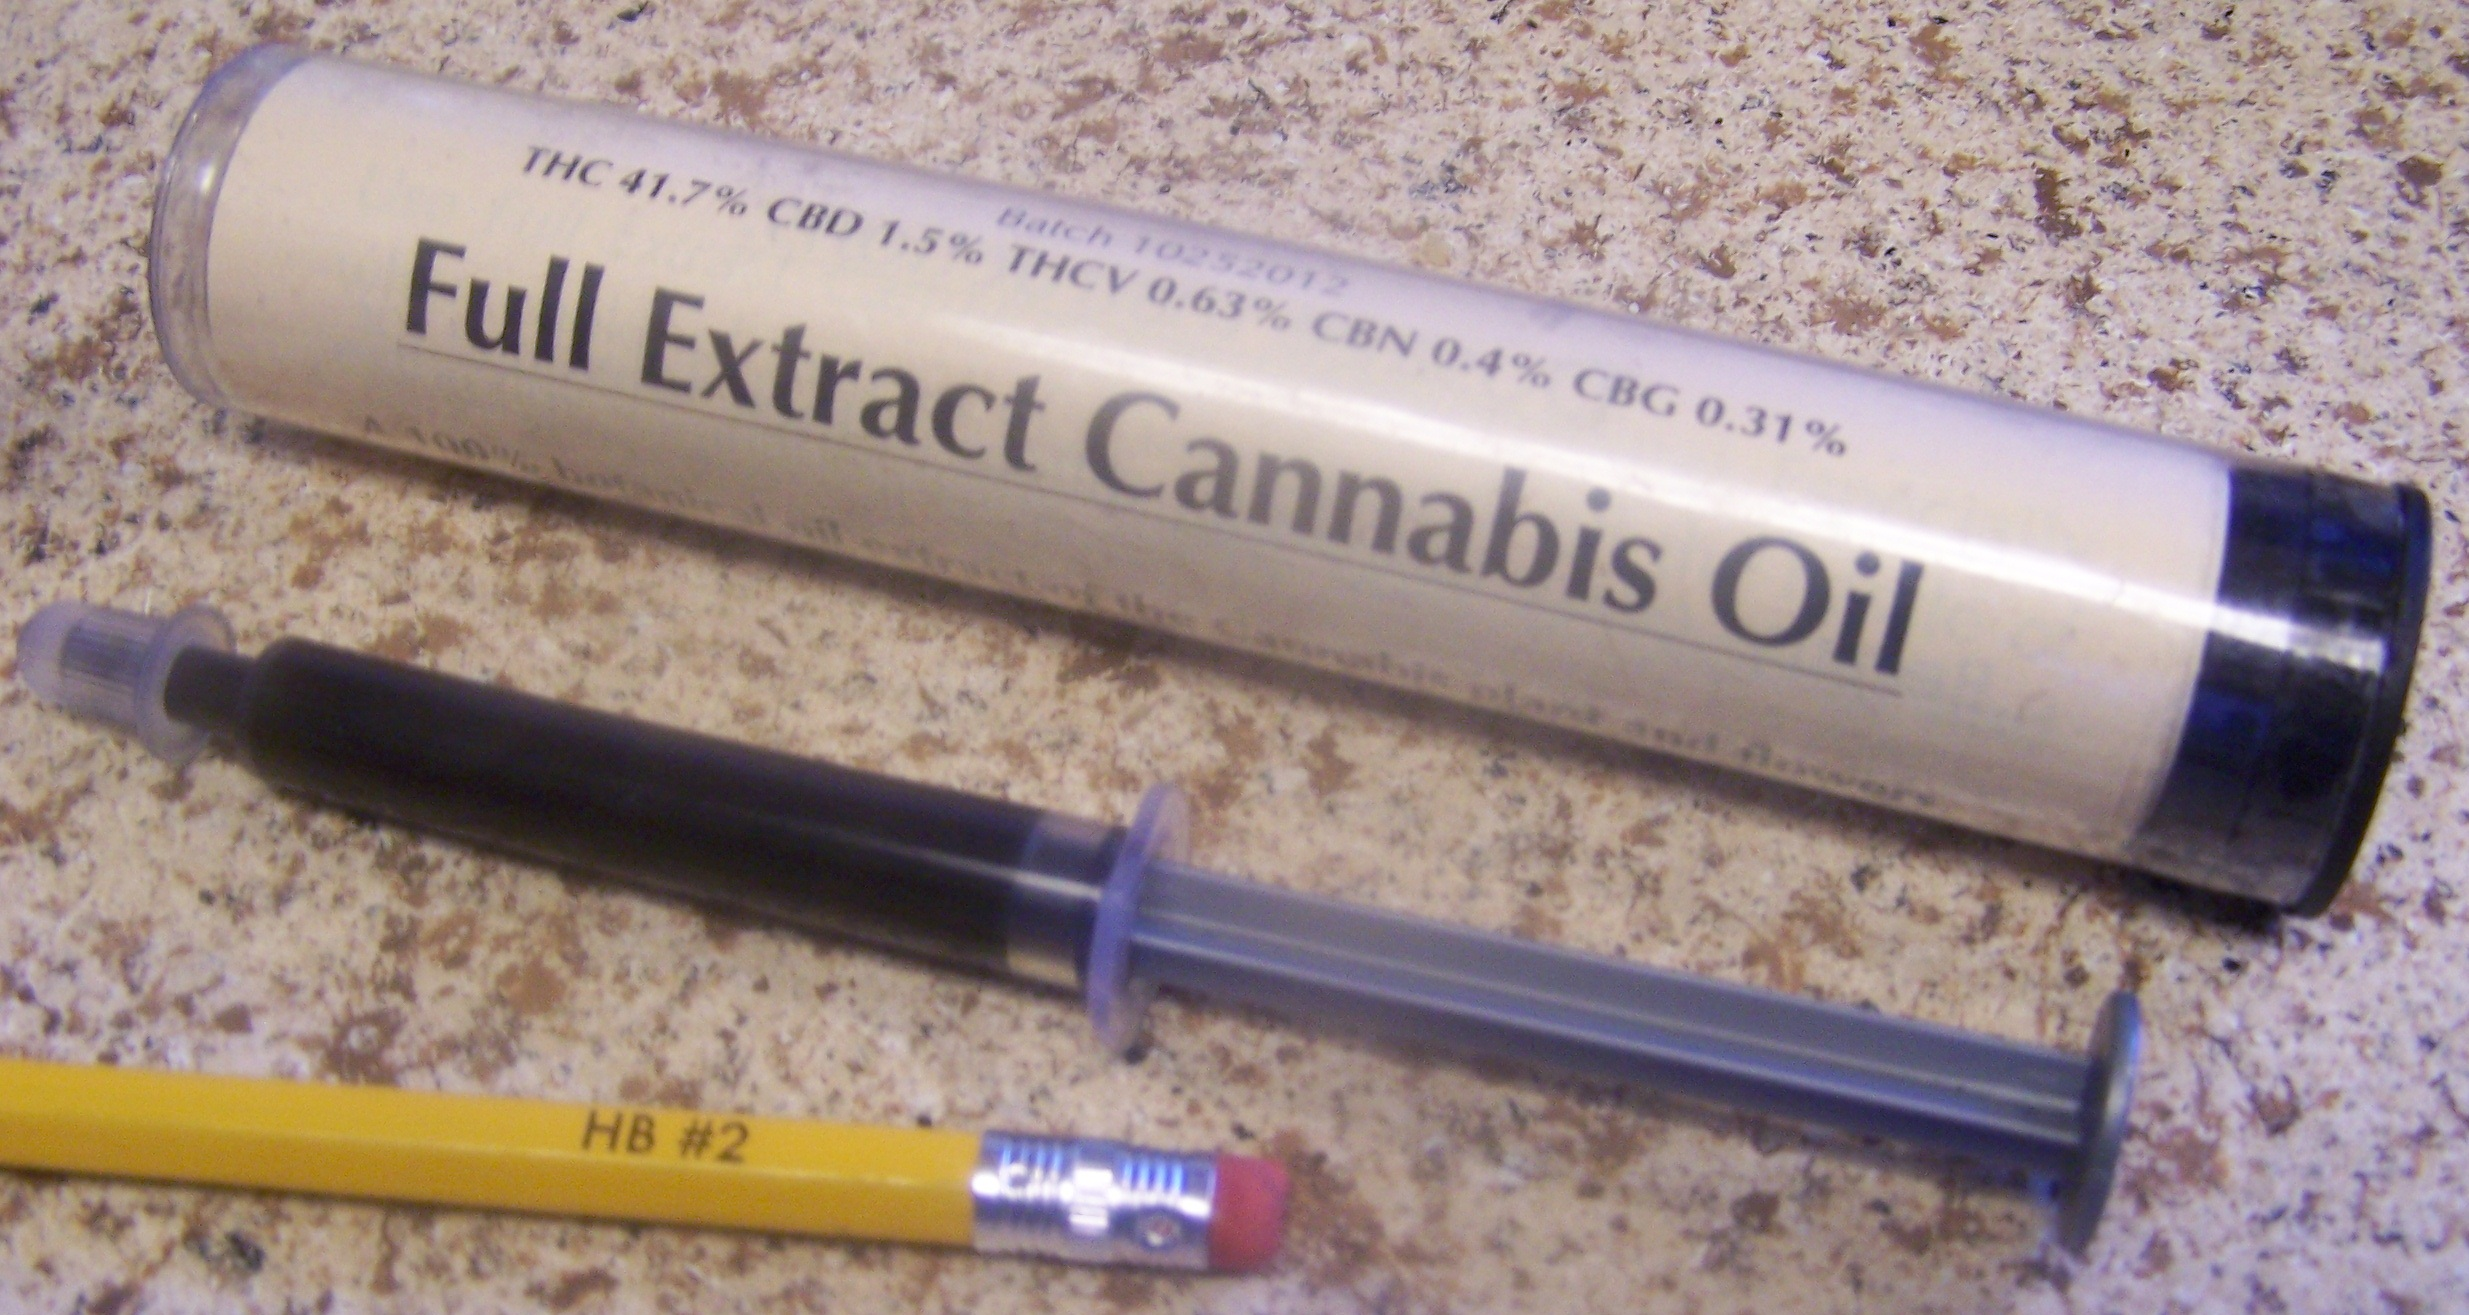 Woman Rids Body of Cancer in 4 Months Using Cannabis Oil - Medical